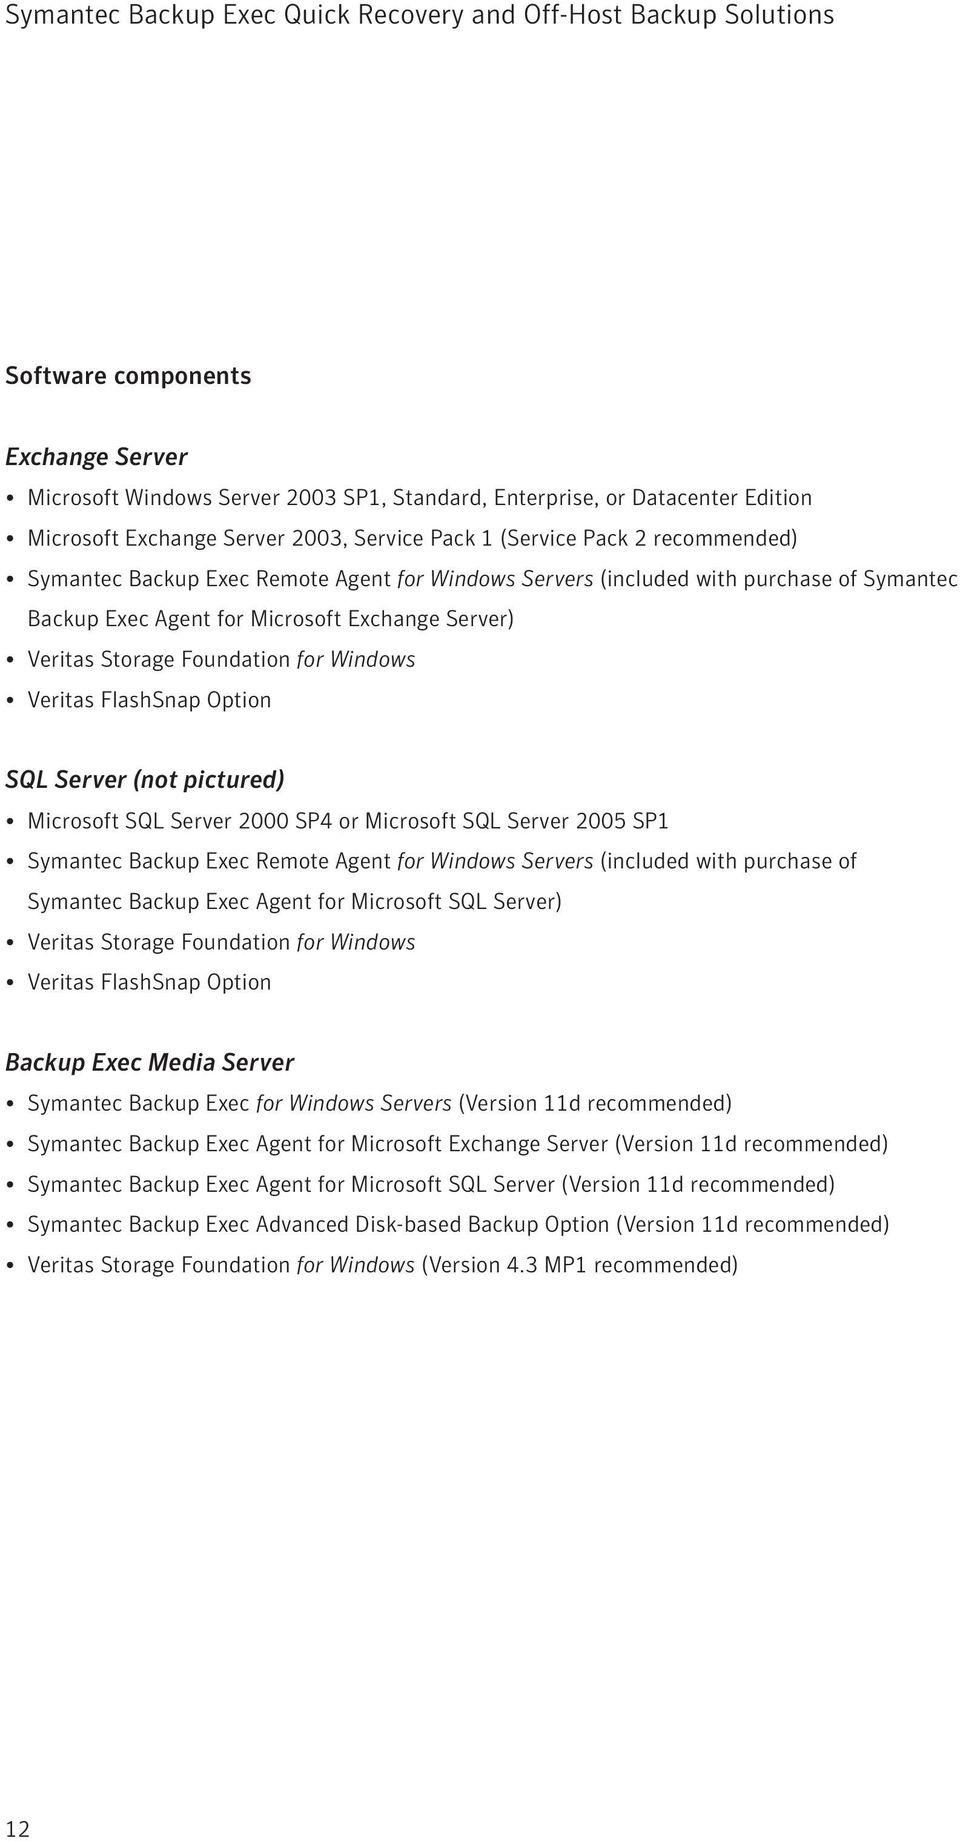 Server (not pictured) Microsoft SQL Server 2000 SP4 or Microsoft SQL Server 2005 SP1 Symantec Backup Exec Remote Agent for Windows Servers (included with purchase of Symantec Backup Exec Agent for